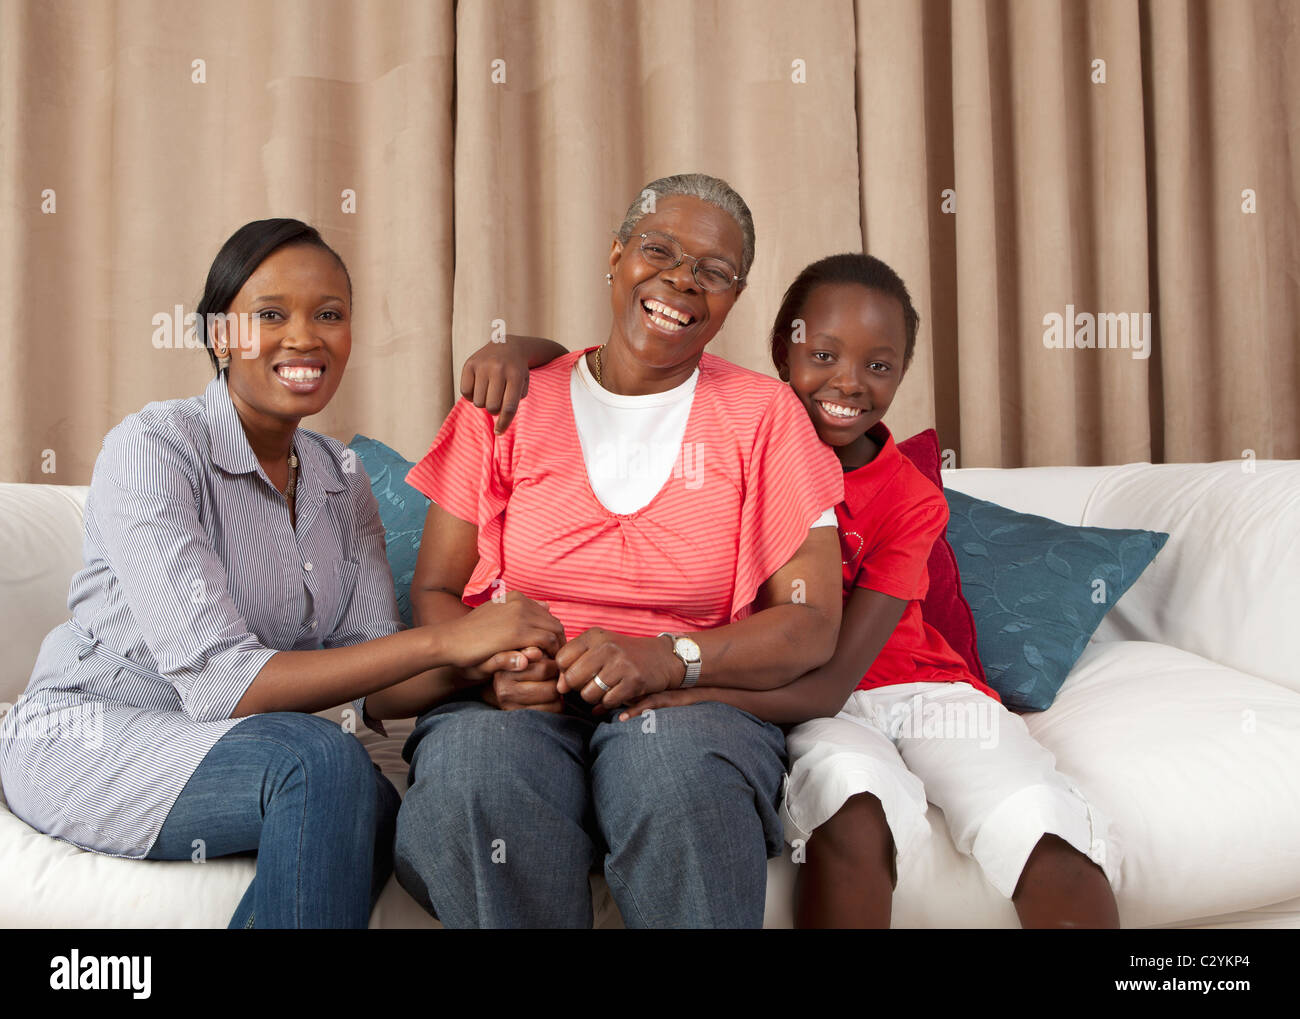 Three generations of women on the couch, Johannesburg, South Africa - Stock Image